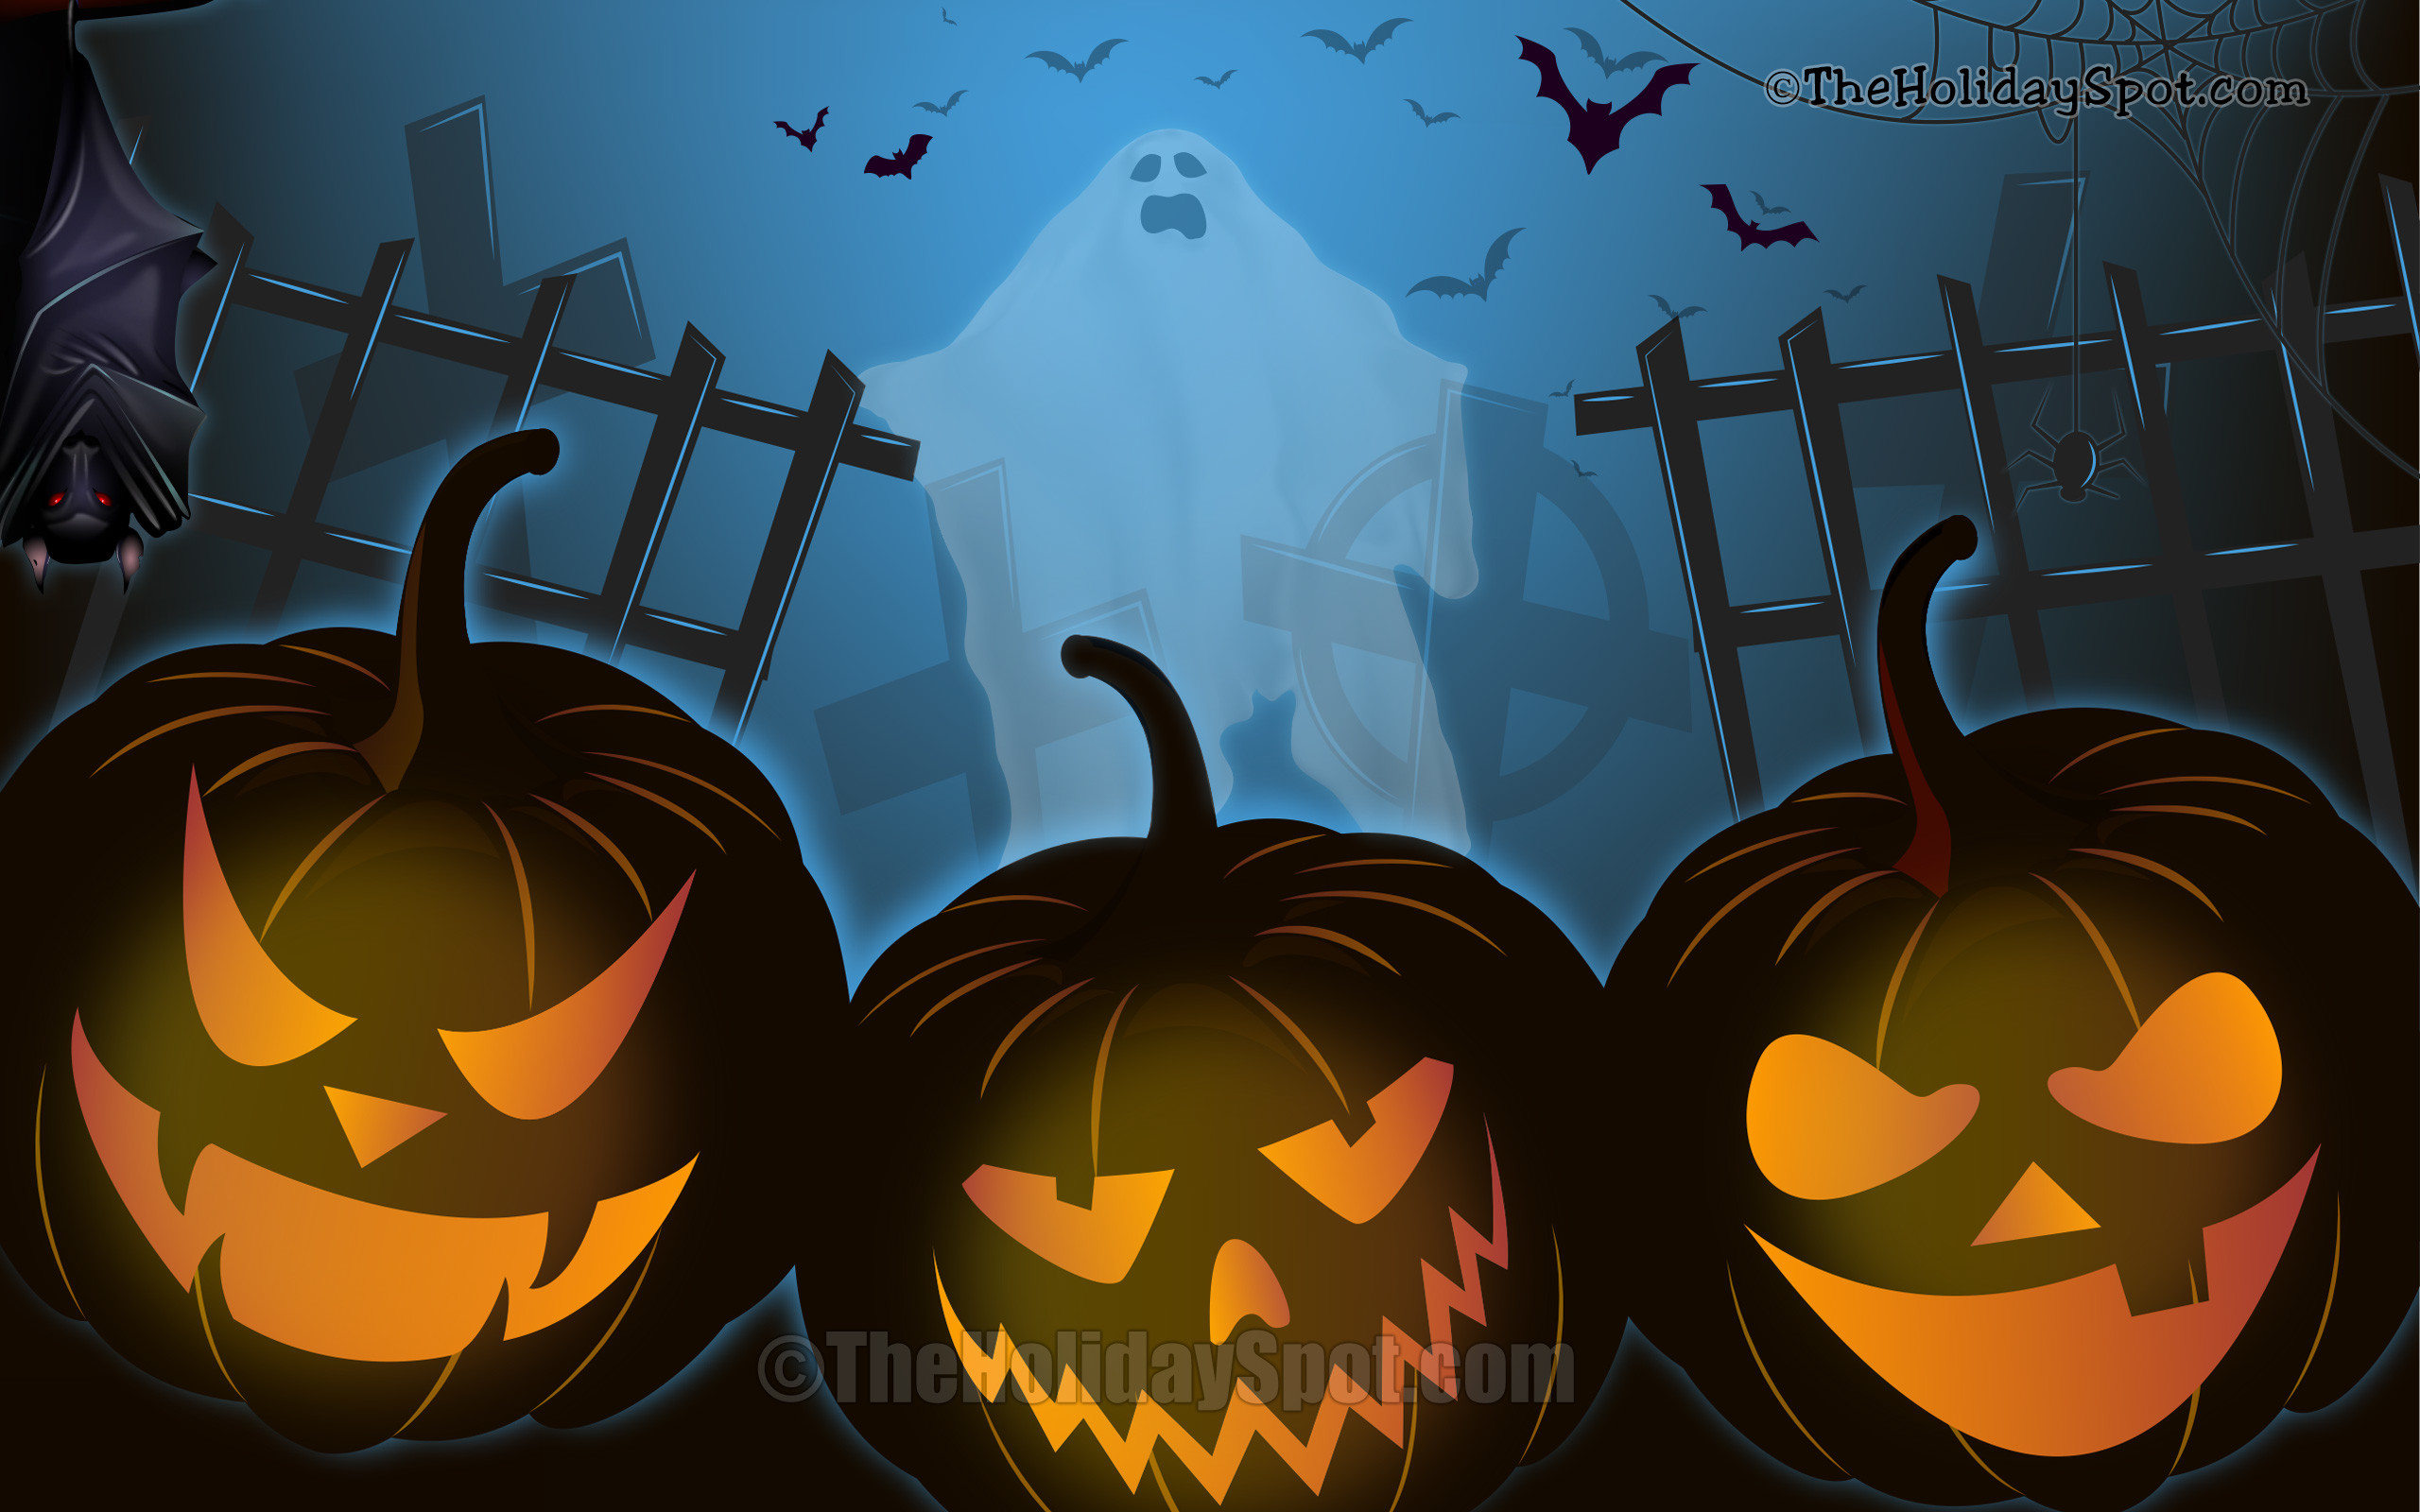 Halloween Pumpkin Wallpaper Hd.Great Pumpkin Wallpaper 60 Images